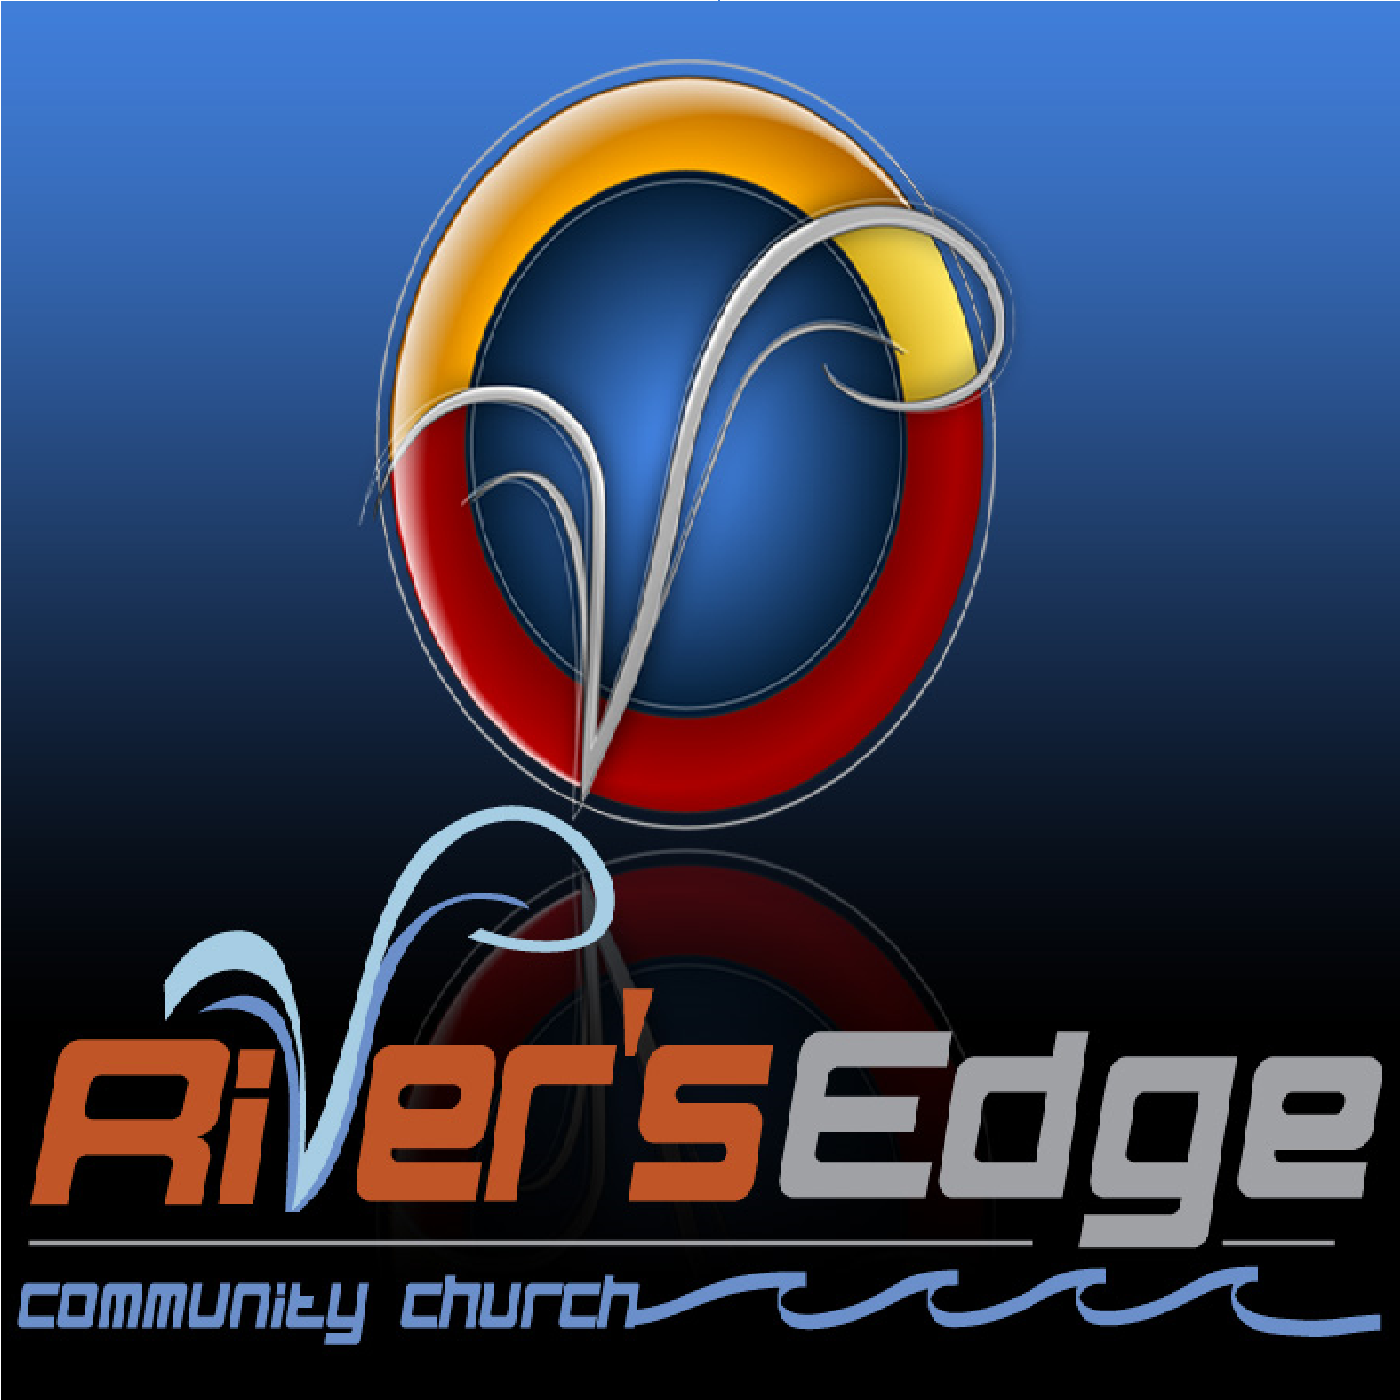 River's Edge Community Church Podcast